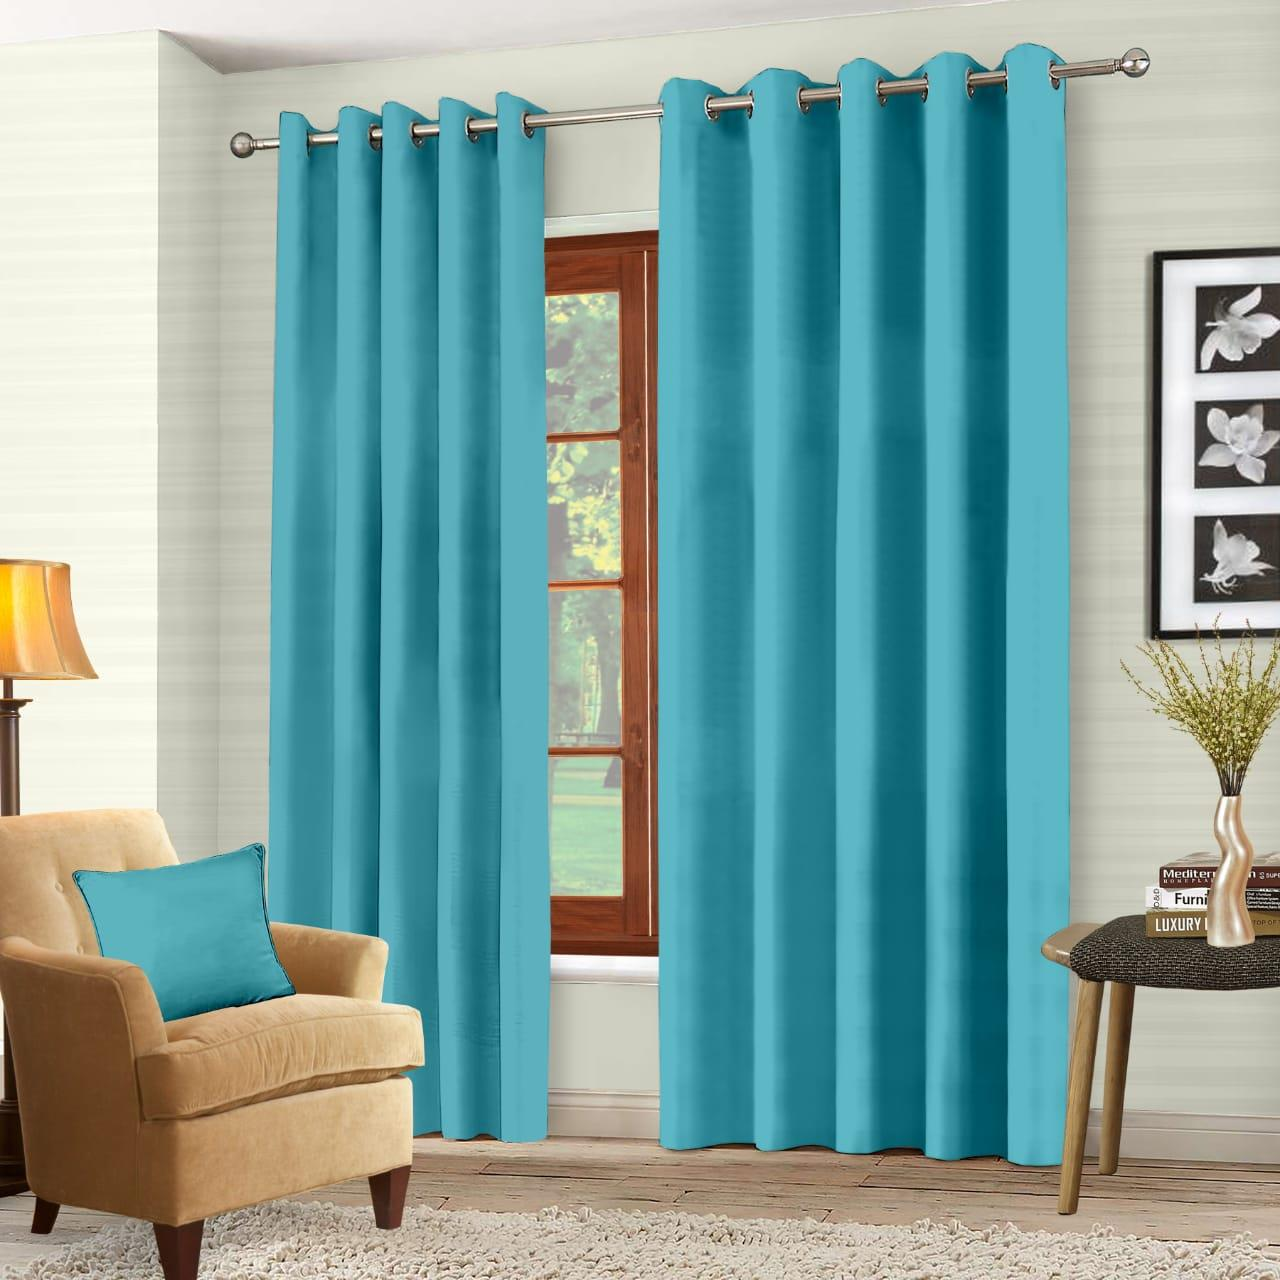 Luxury-Thermal-Blackout-Eyelet-Ring-Top-Curtains-Pair-with-tie-backs thumbnail 61